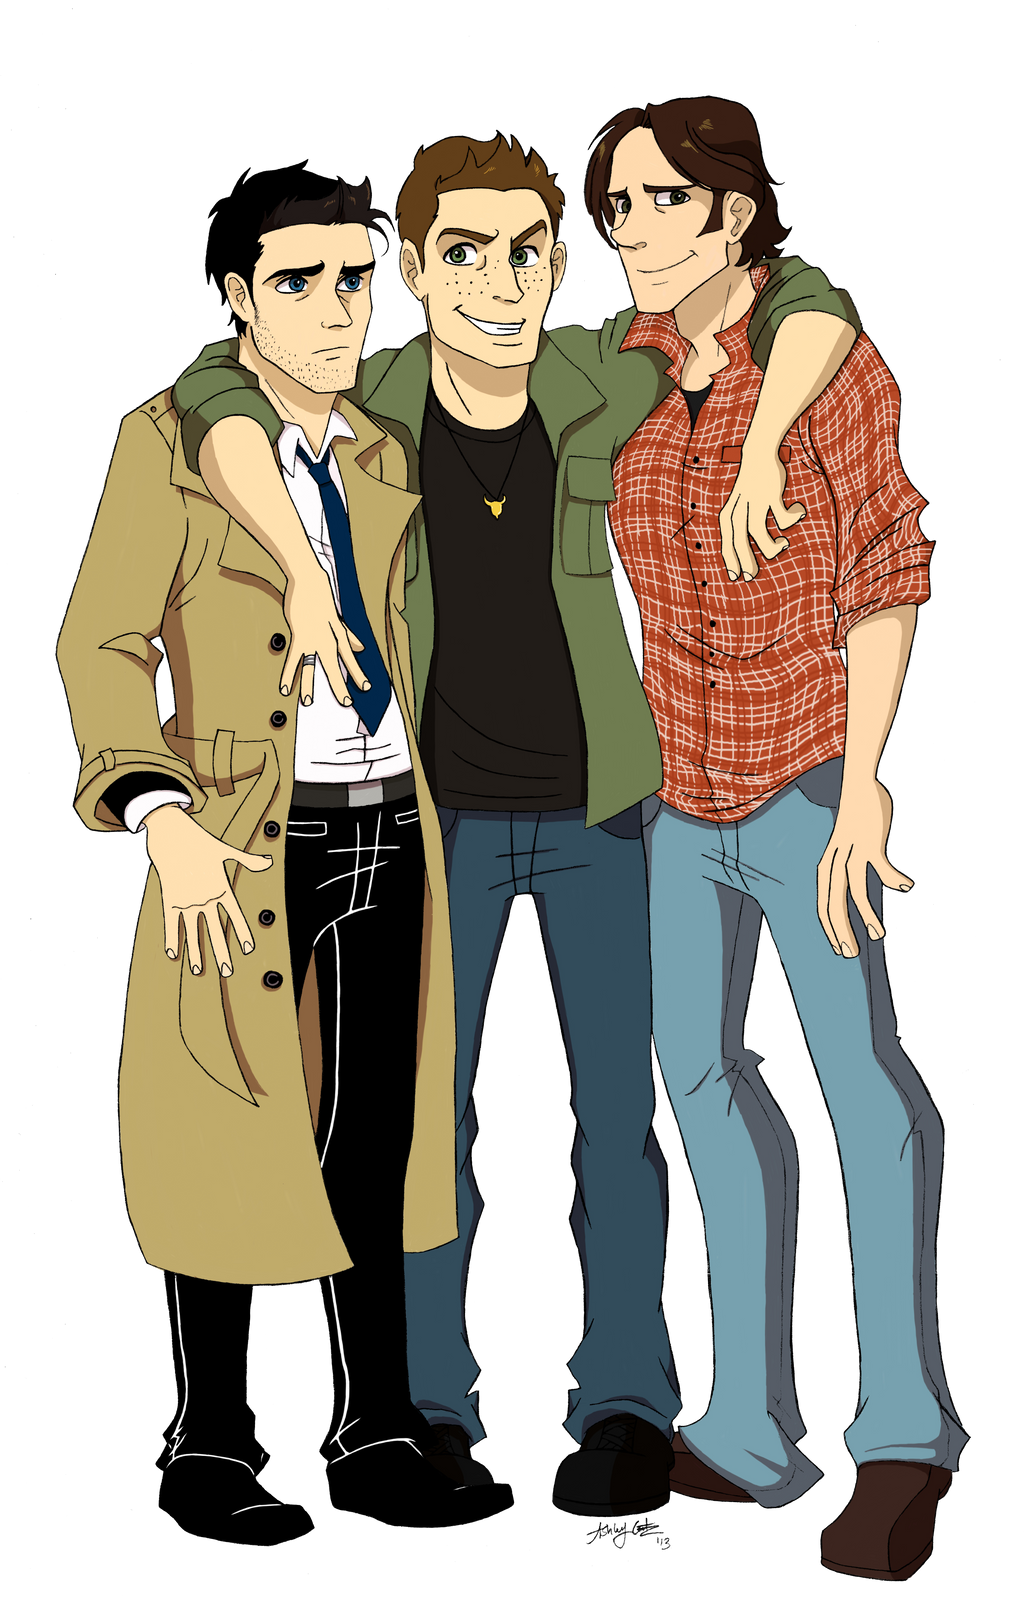 spn: three best friendsartisticcole on deviantart